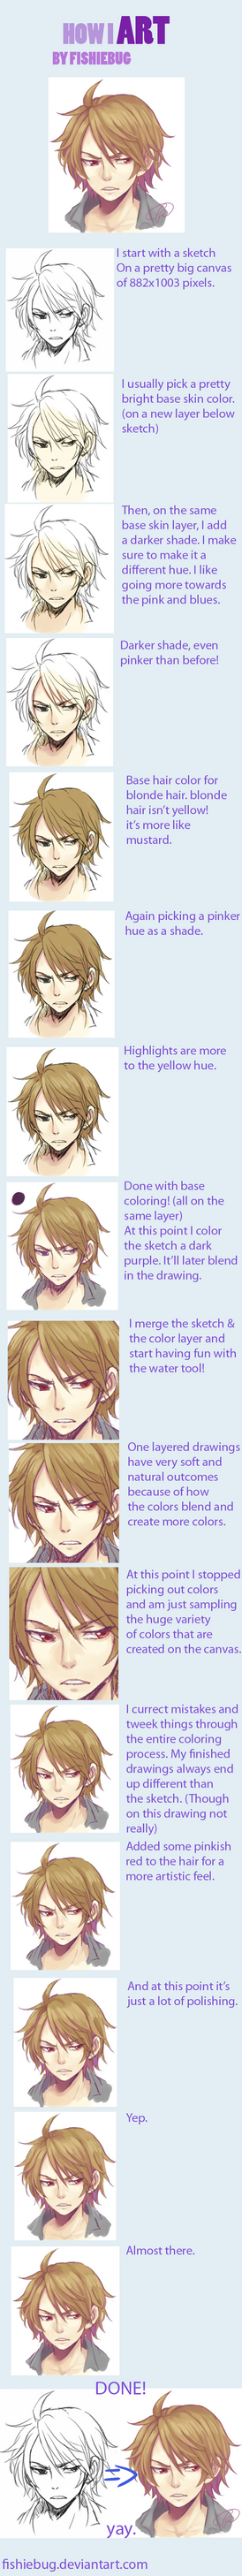 How I art - Fi's coloring process by Fishiebug